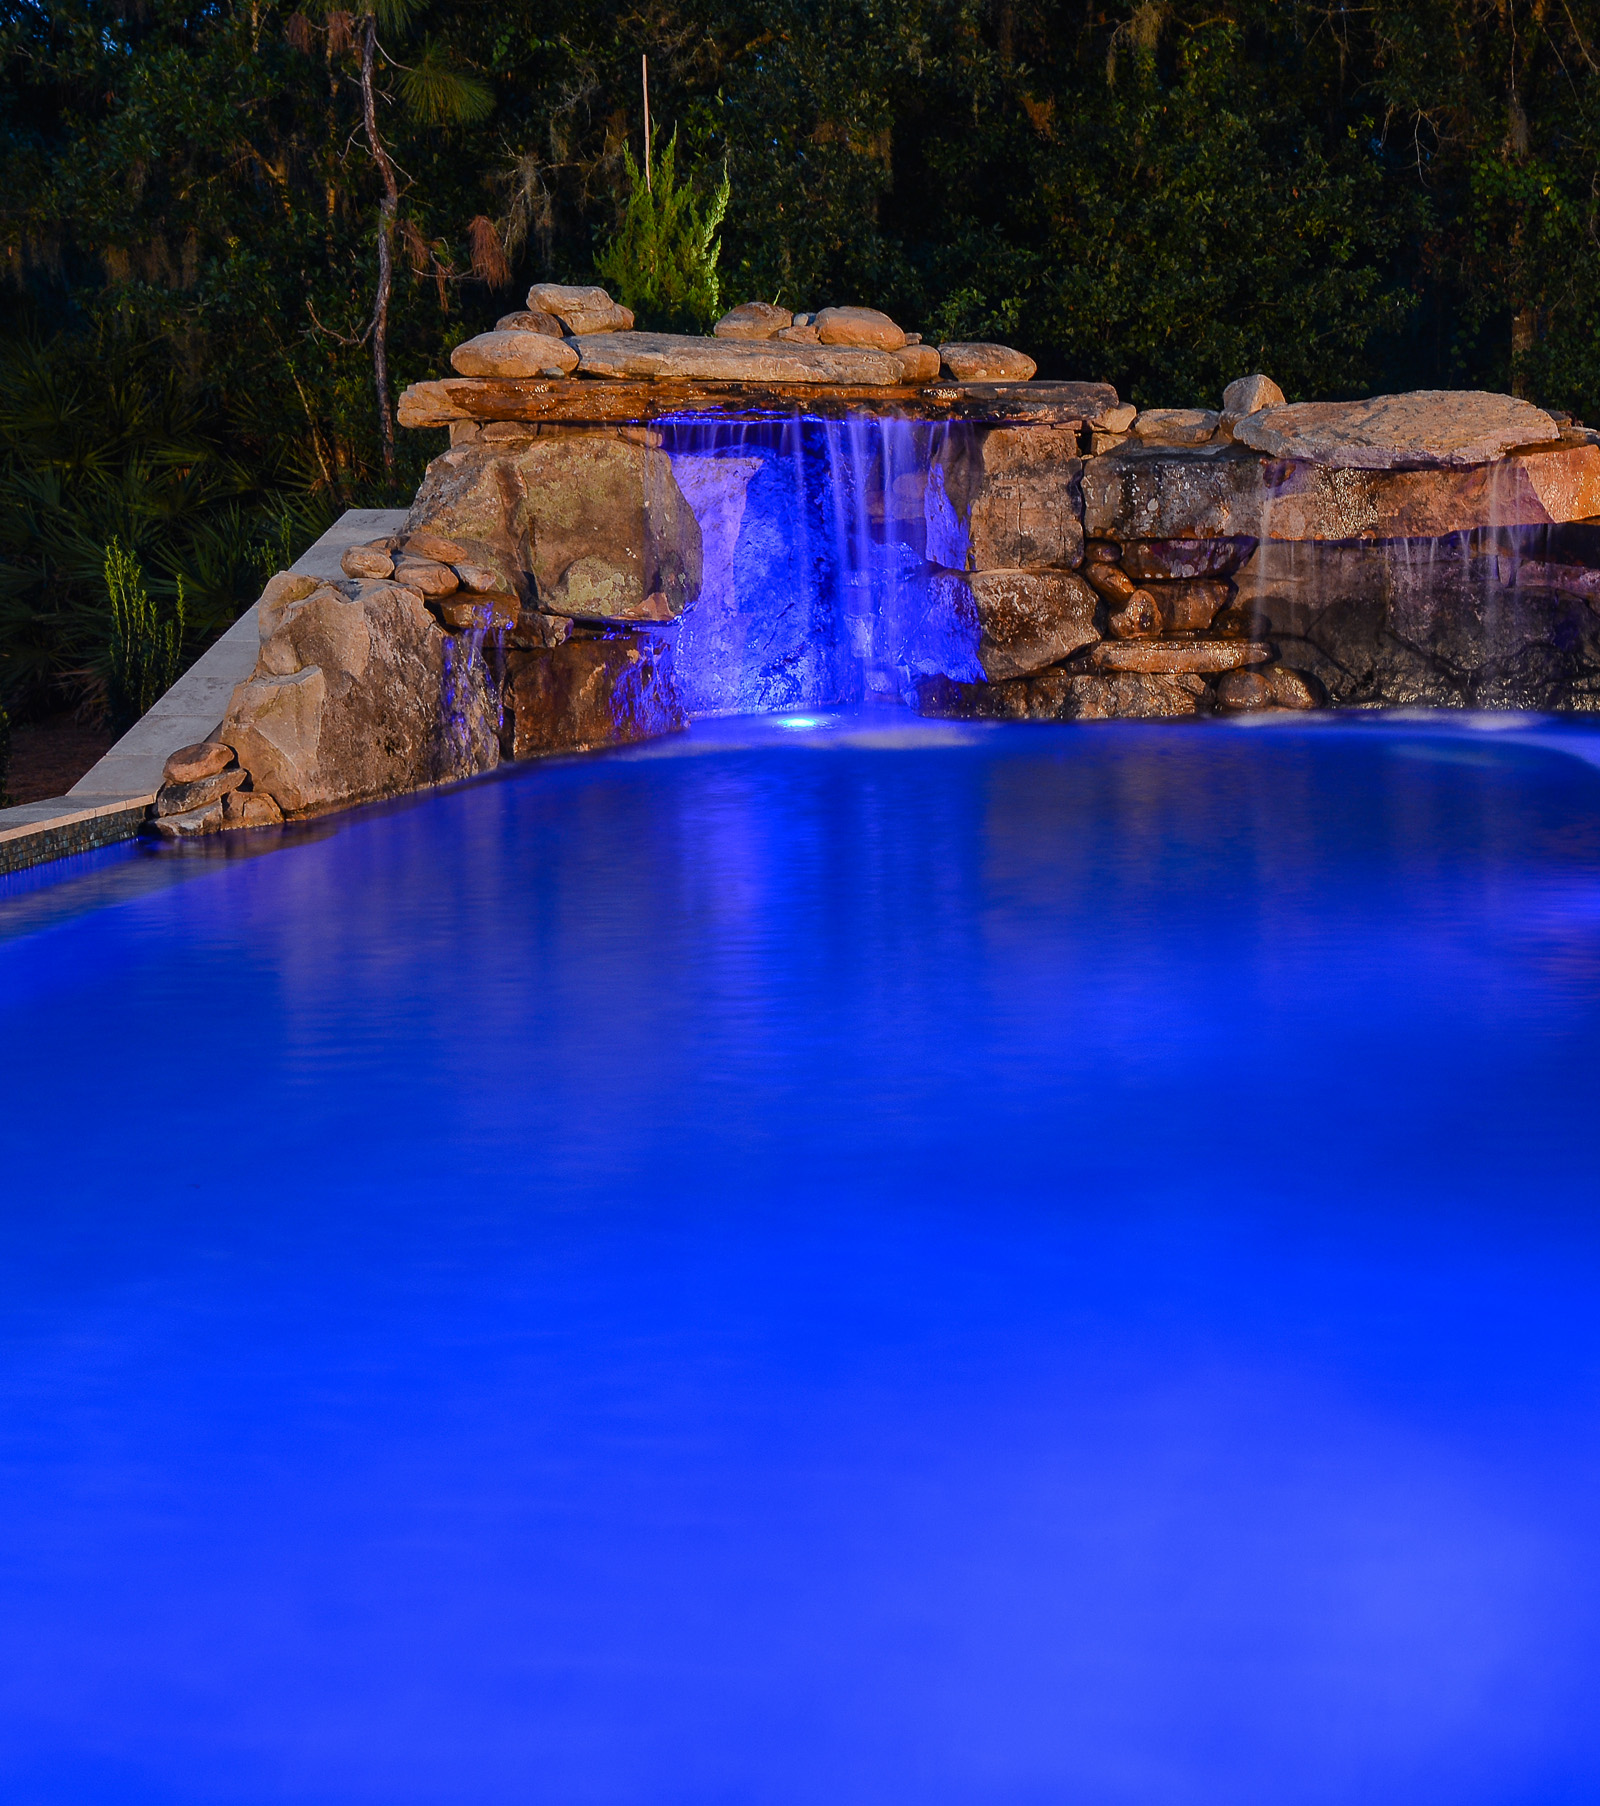 Lucas lagoons custom pool builder sarasota featured on for Pool design tv show